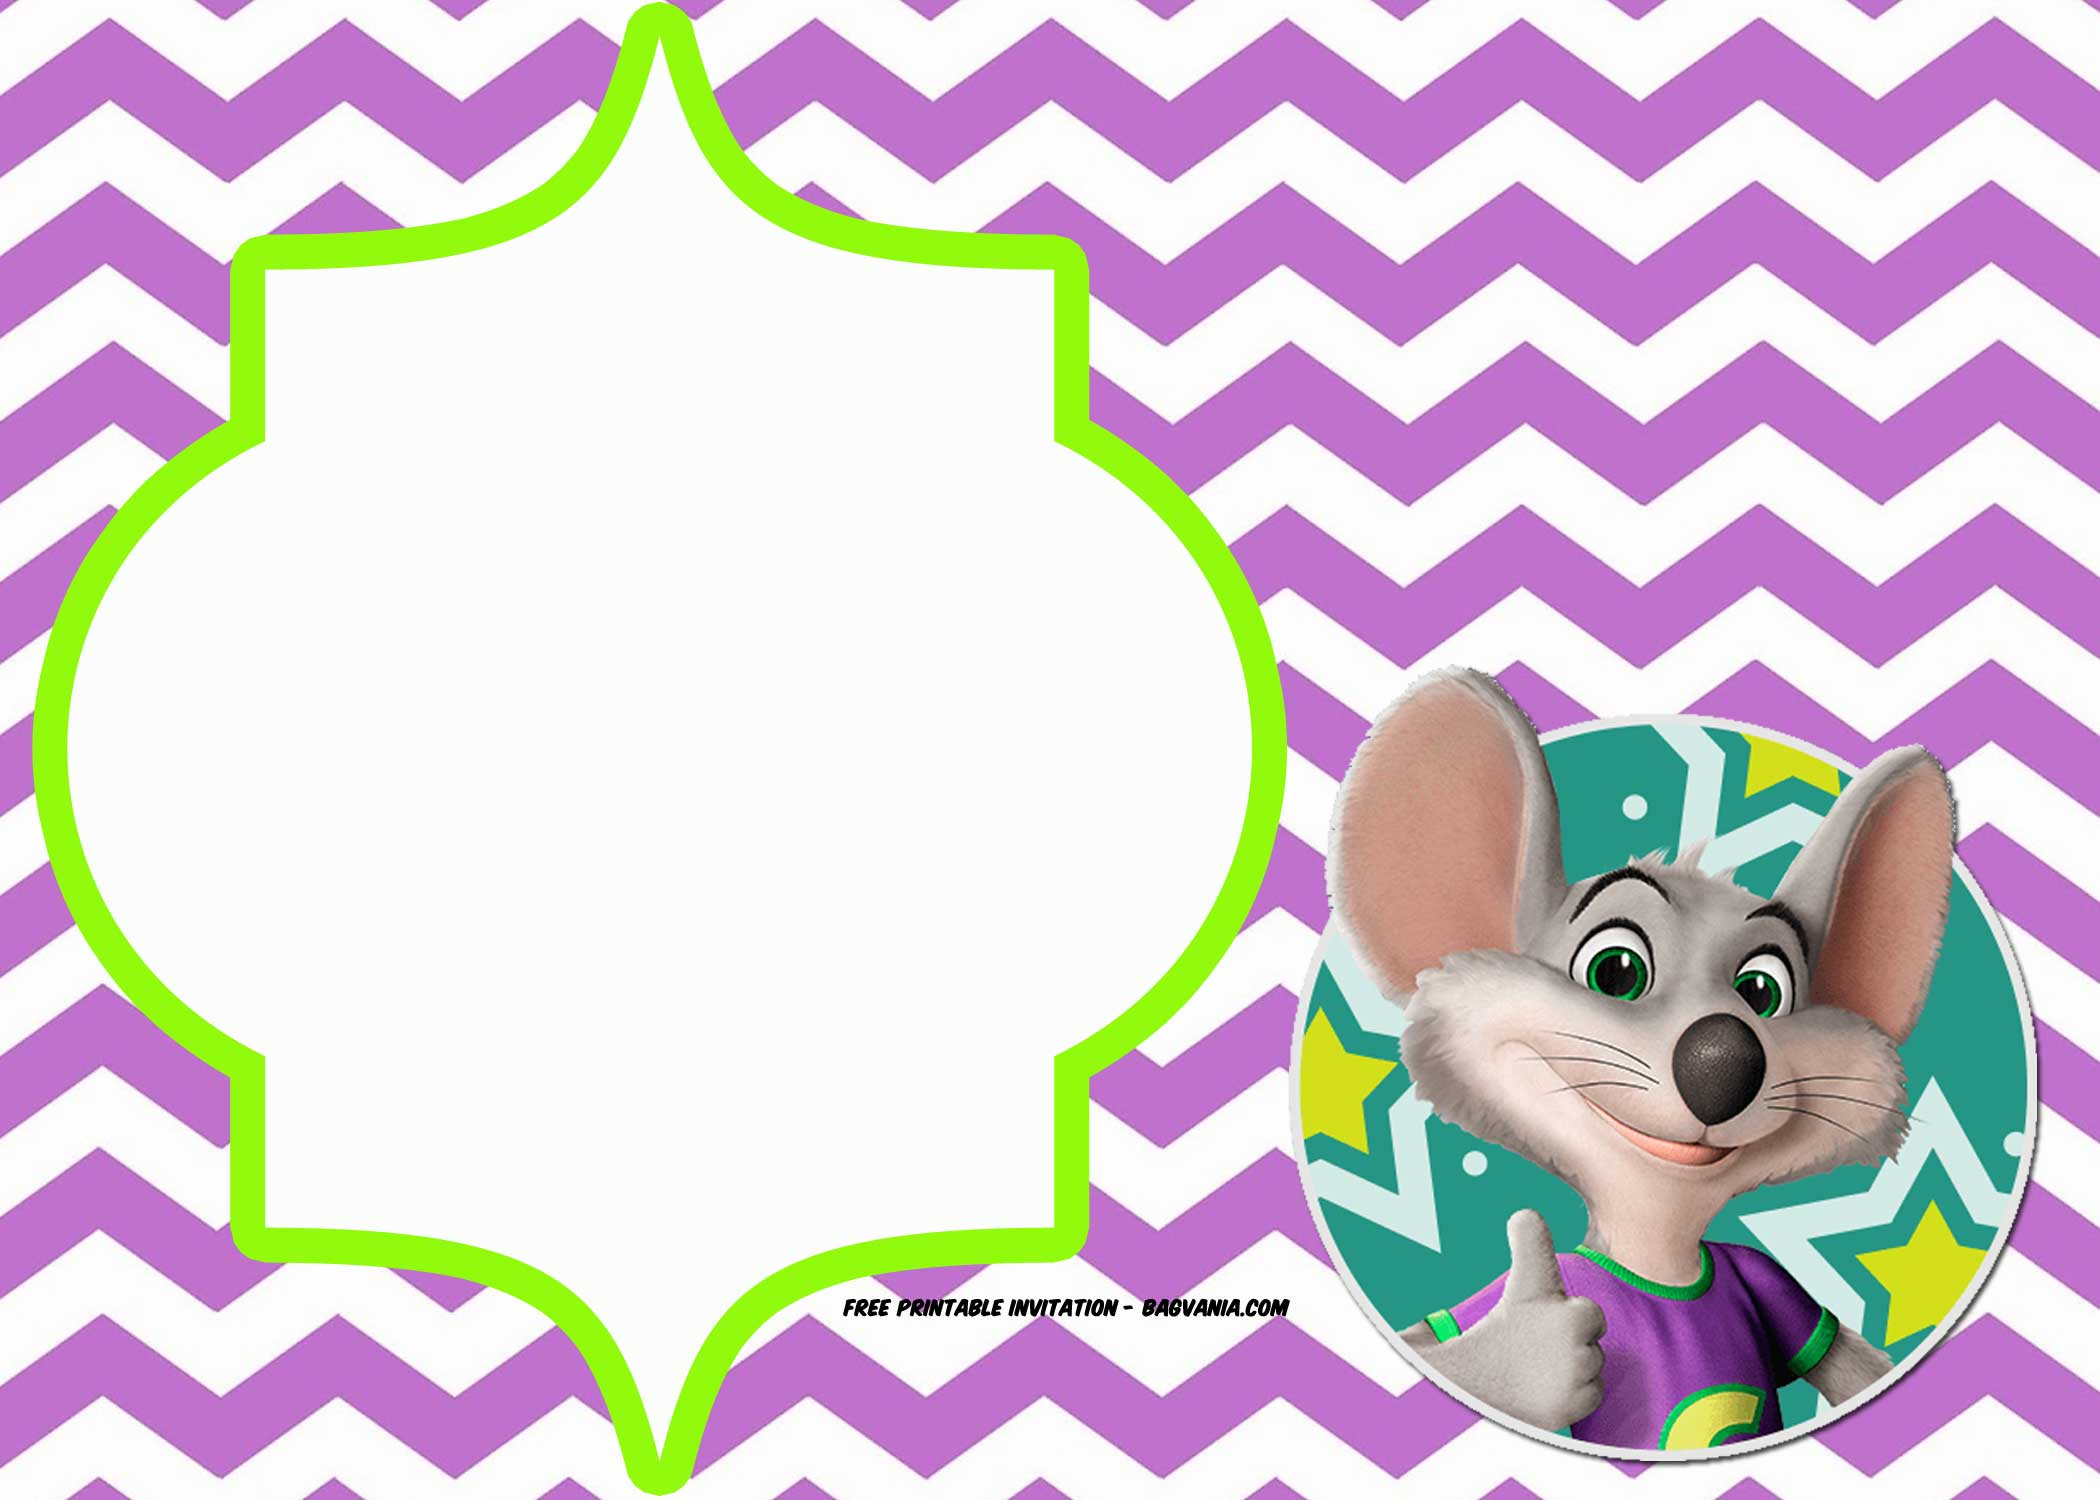 FREE Chuck E Cheese Birthday Invitation Template Bagvania FREE - Chuck e cheese birthday invitation template